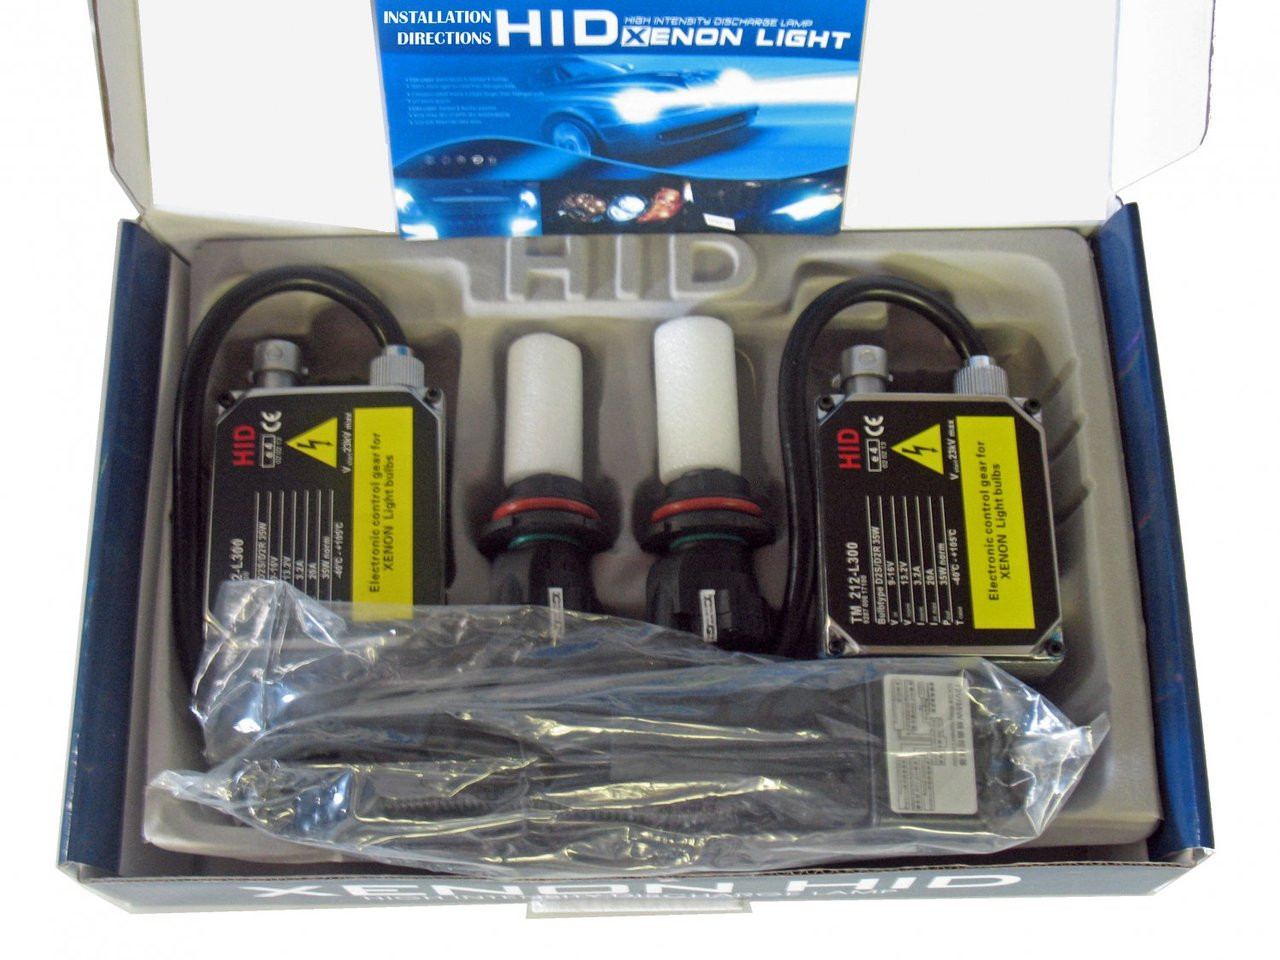 10,000K Deep Blue 55 Watt H6M Bi-Xenon HID Kit